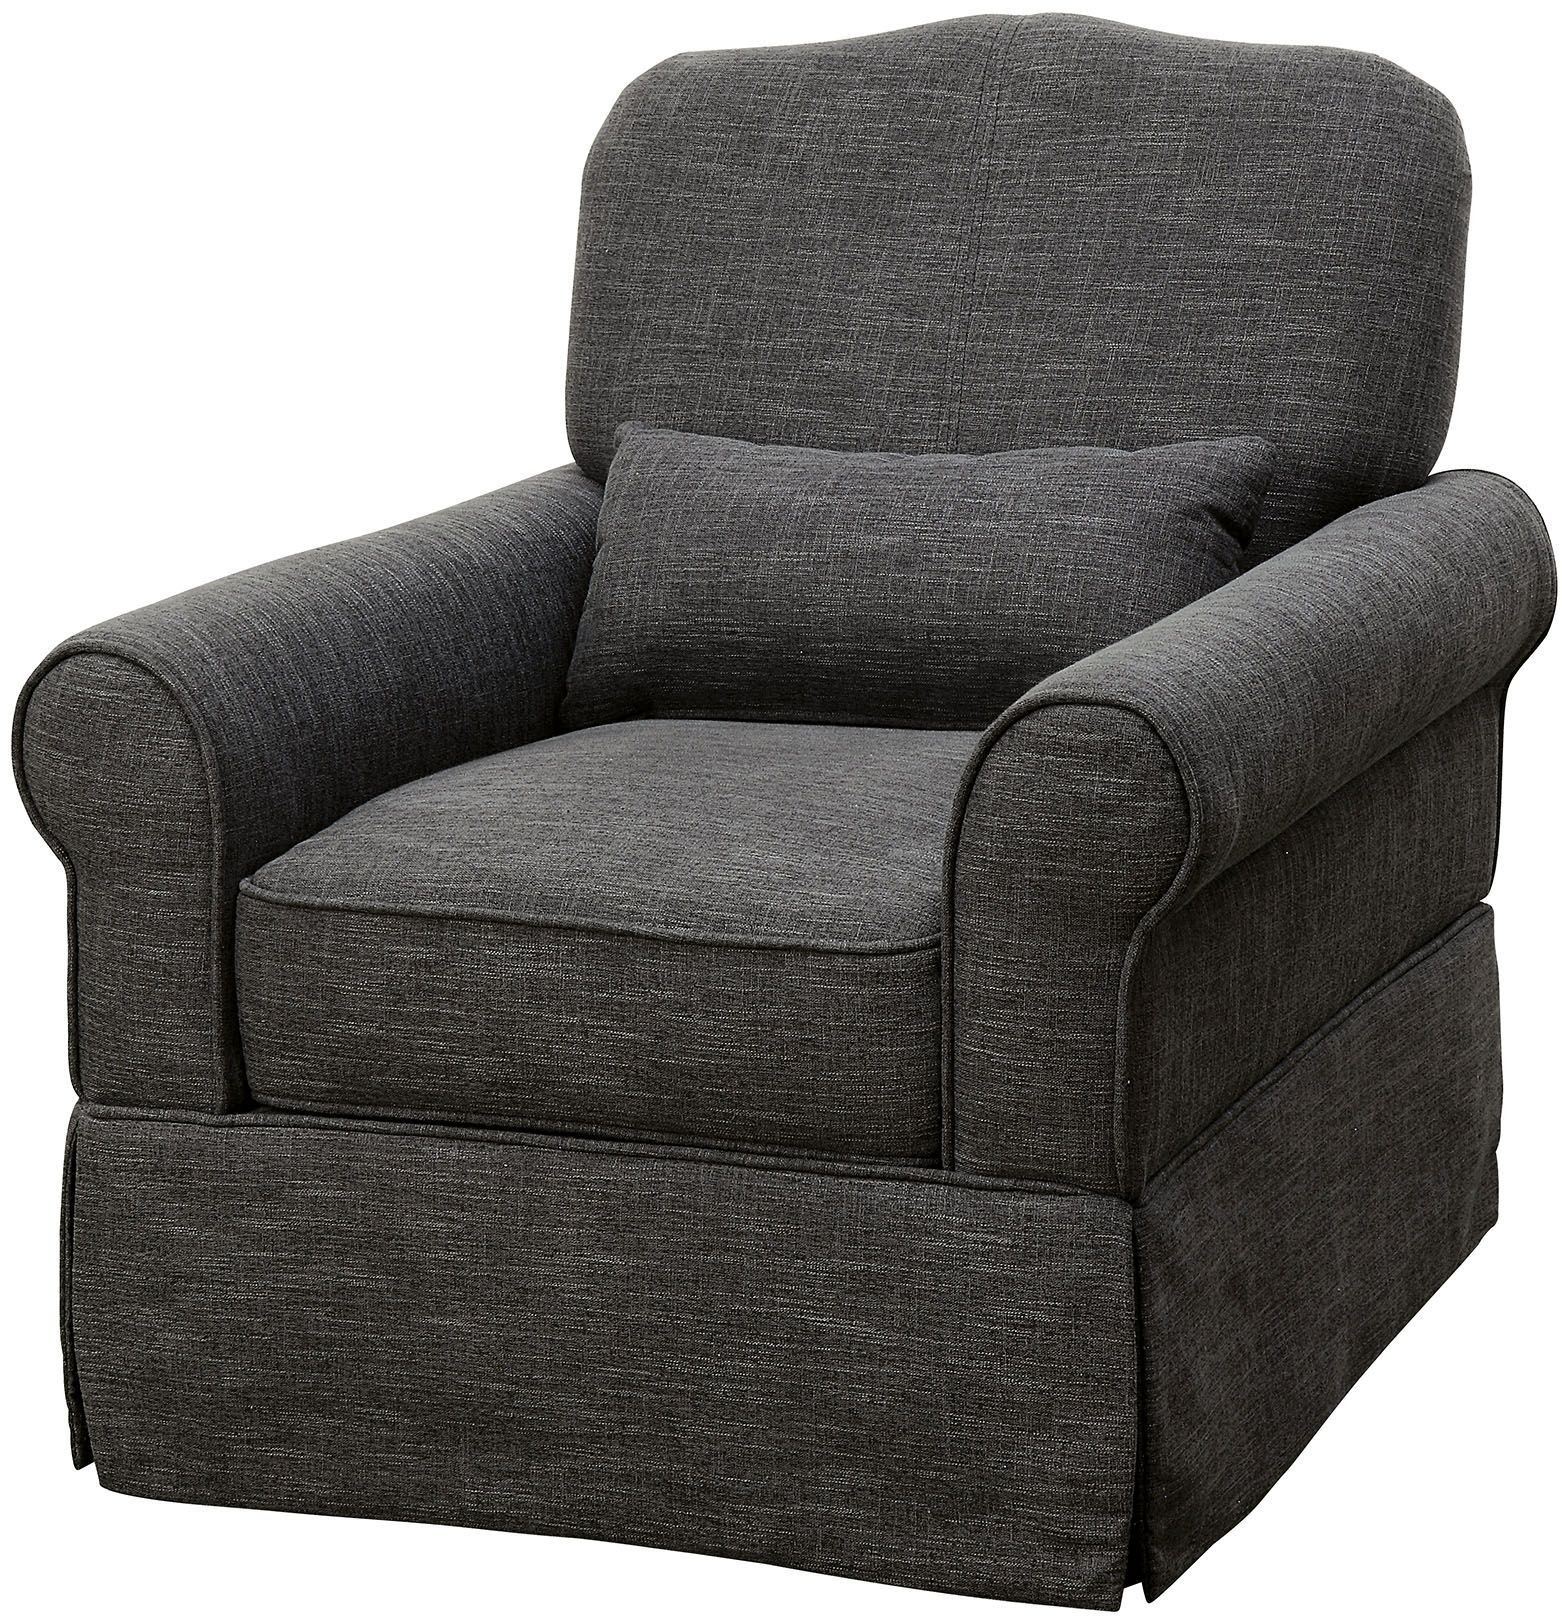 Gray Recliner Chair Lesly Dark Gray 360 Swivel Glider Reclining Chair From